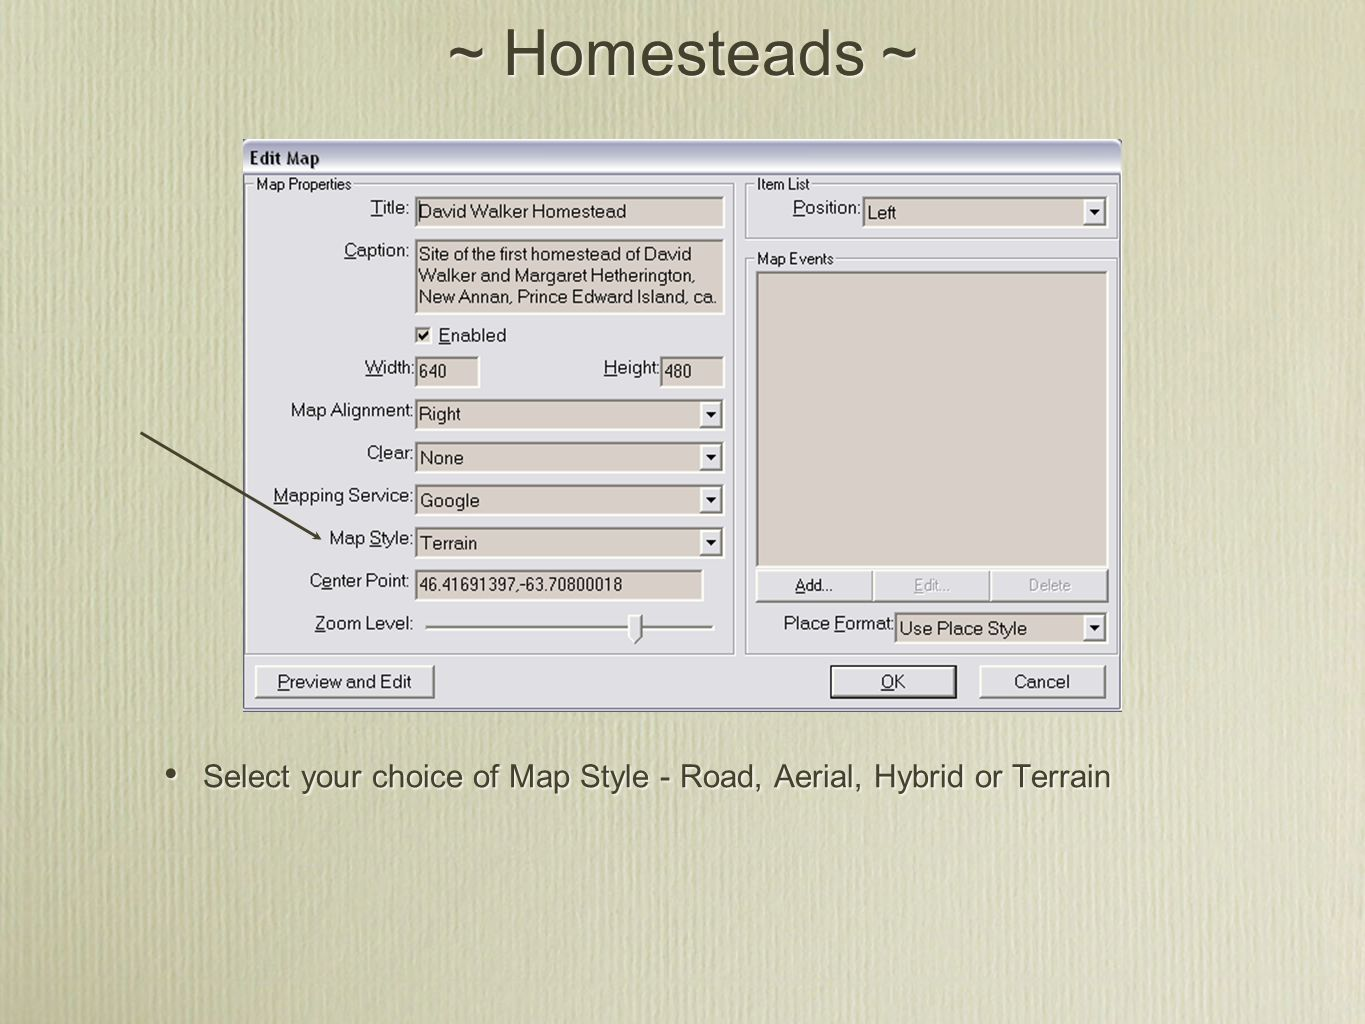 ~ Homesteads ~ Select your choice of Map Style - Road, Aerial, Hybrid or Terrain